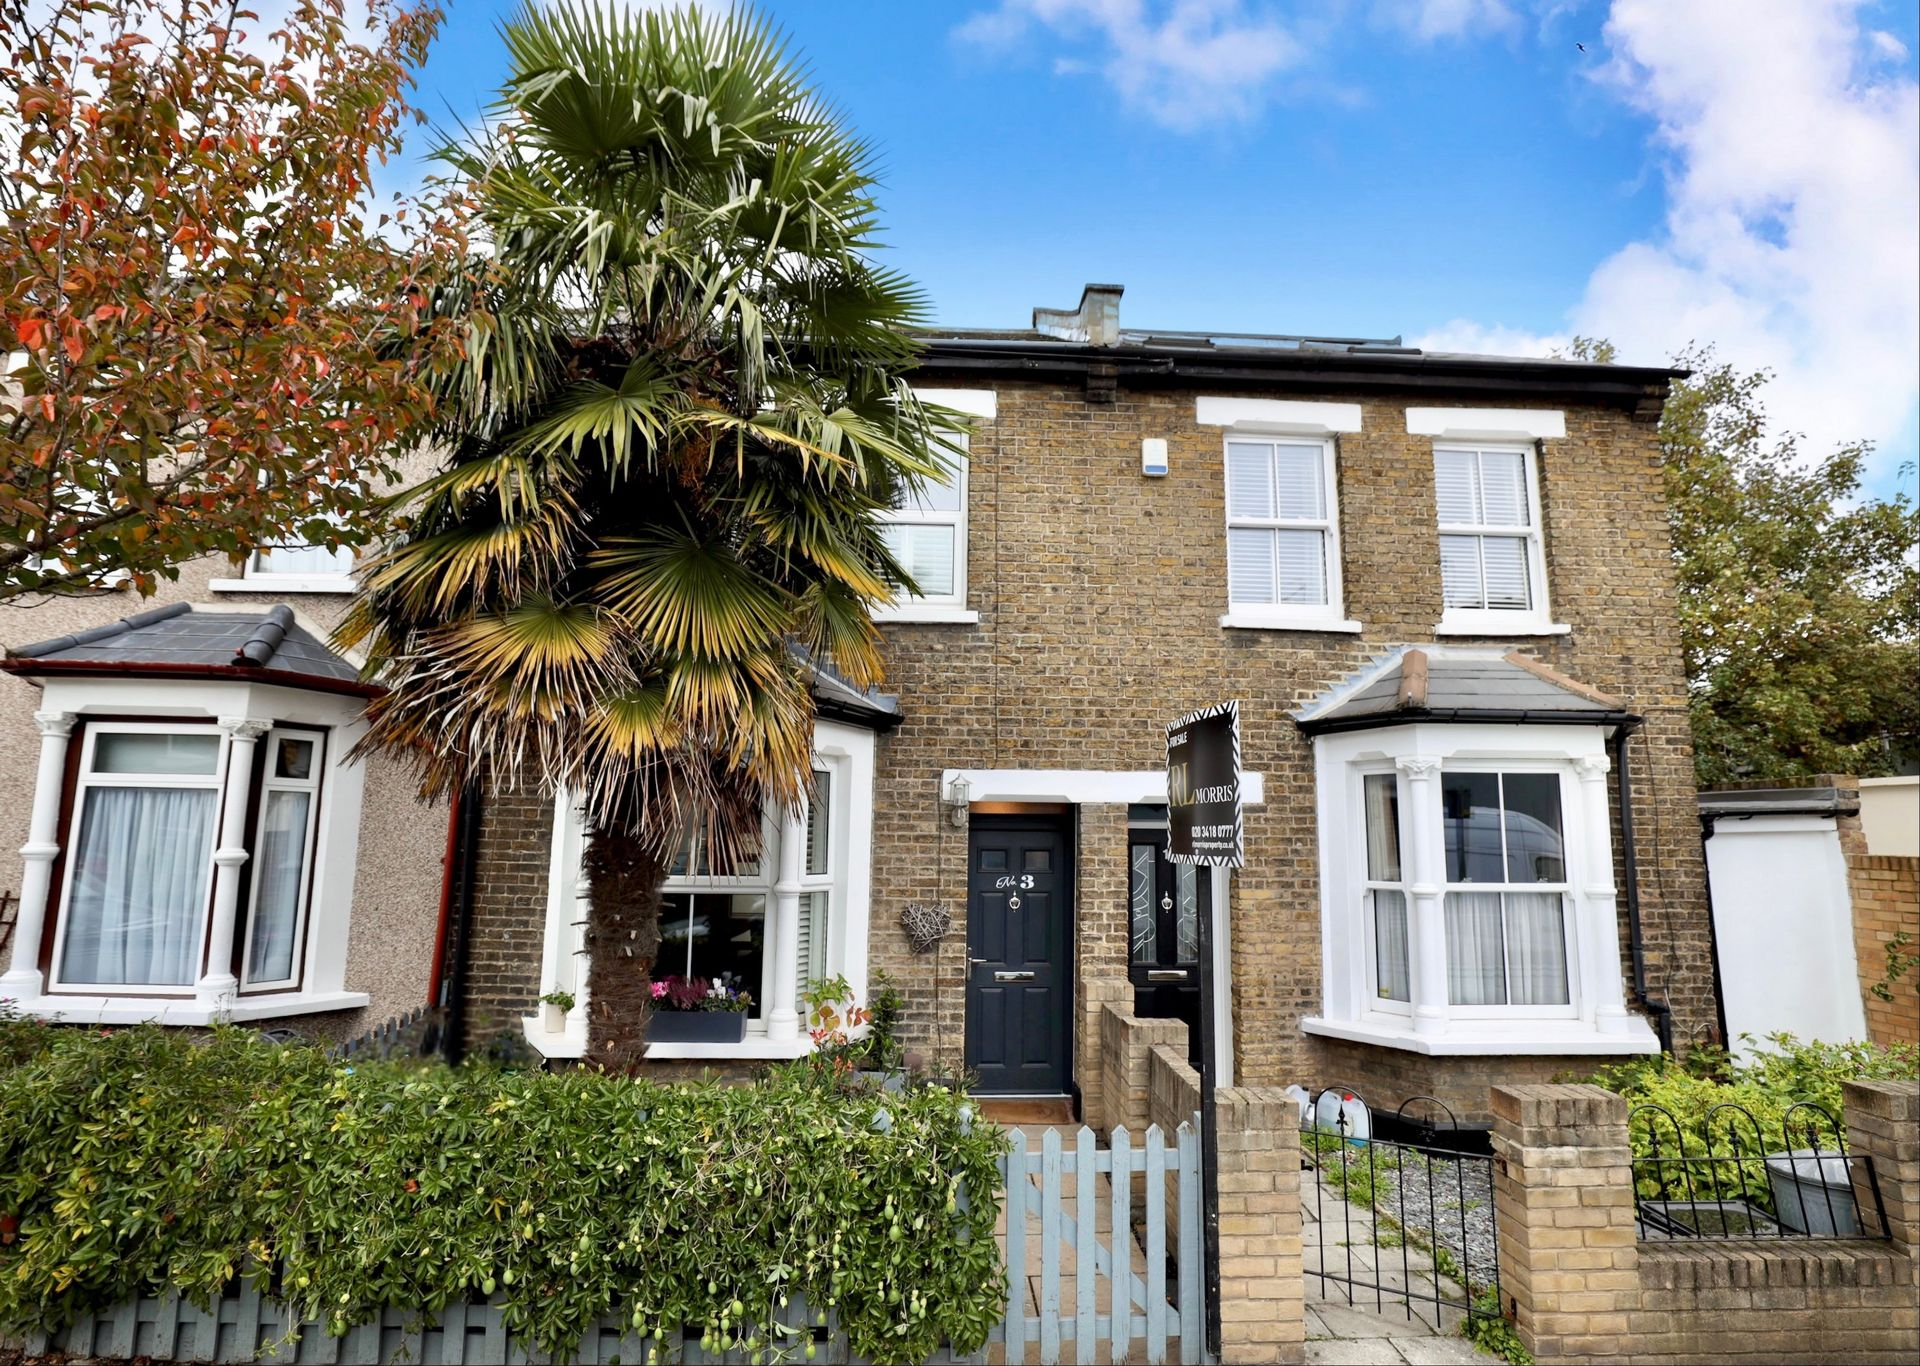 Photo 5, Granville Road, South Woodford, E18